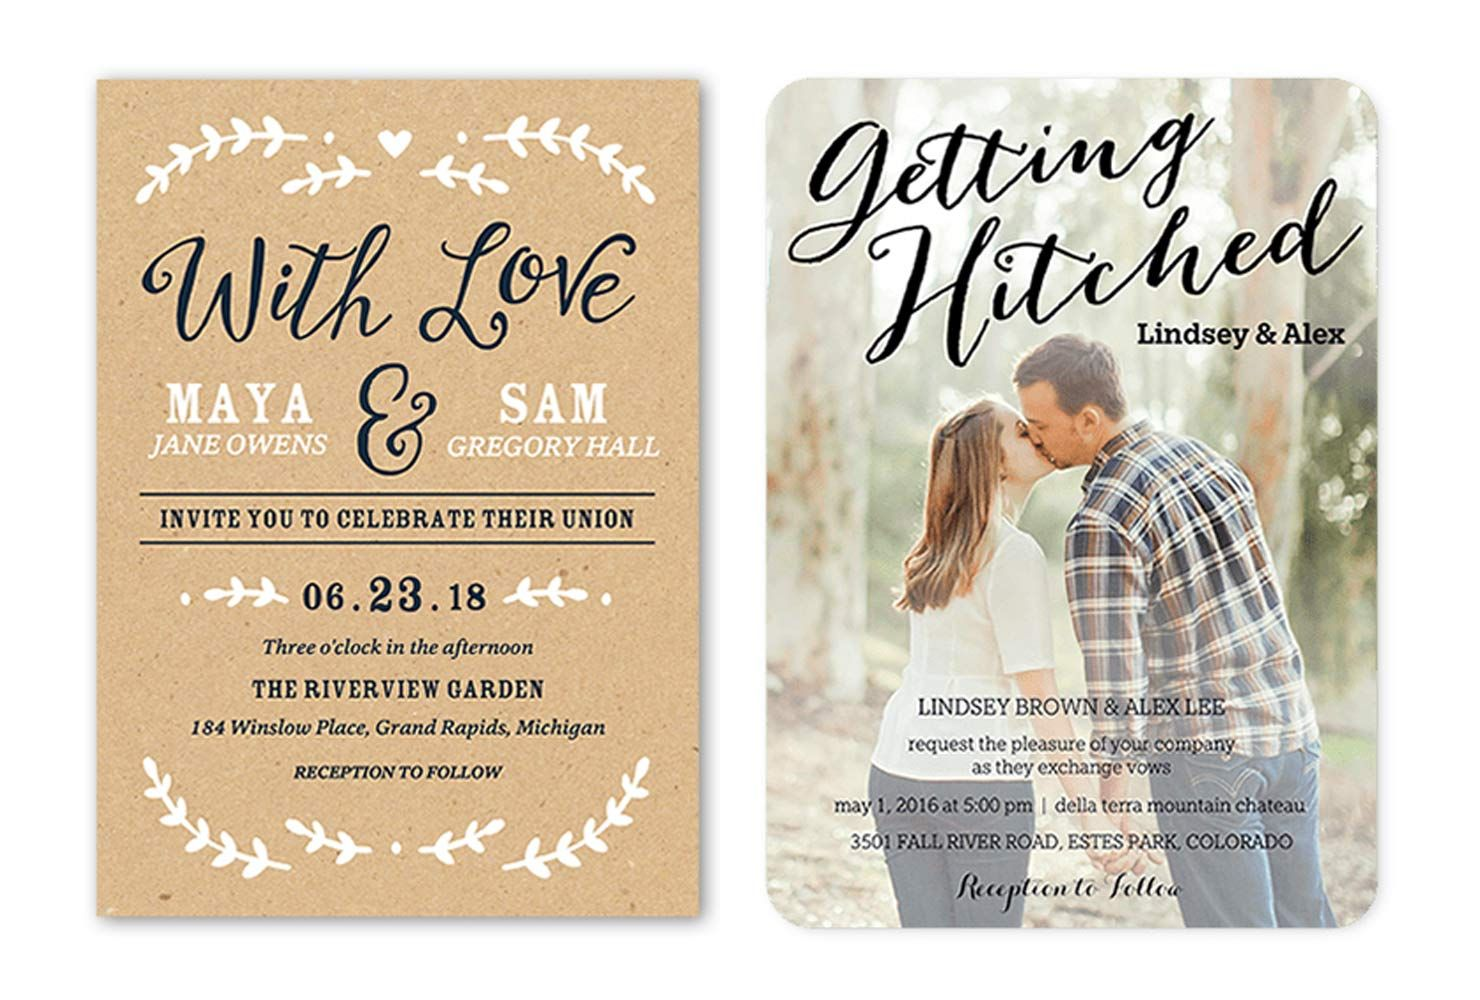 35 Wedding Invitation Wording Examples 2020 Shutterfly Di 2020